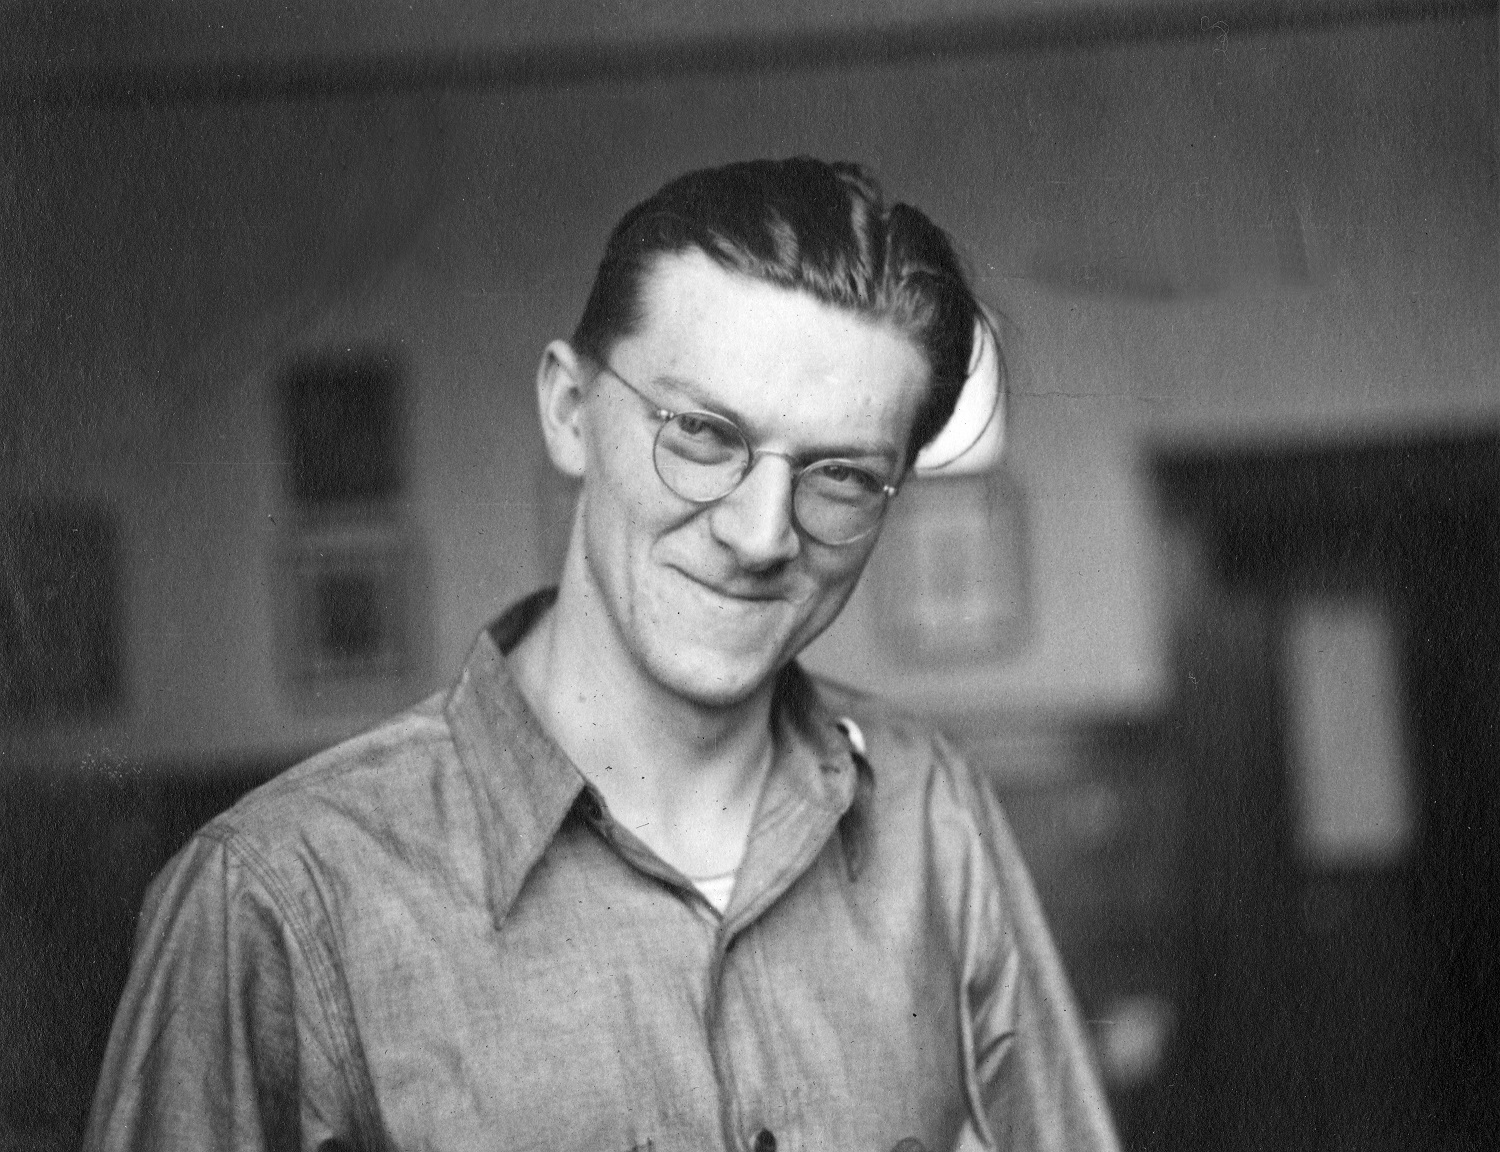 Portrait of Harold Christoffel taken in 1937, the year he began his tenure as president of the UAW Local 248 union in Milwaukee.